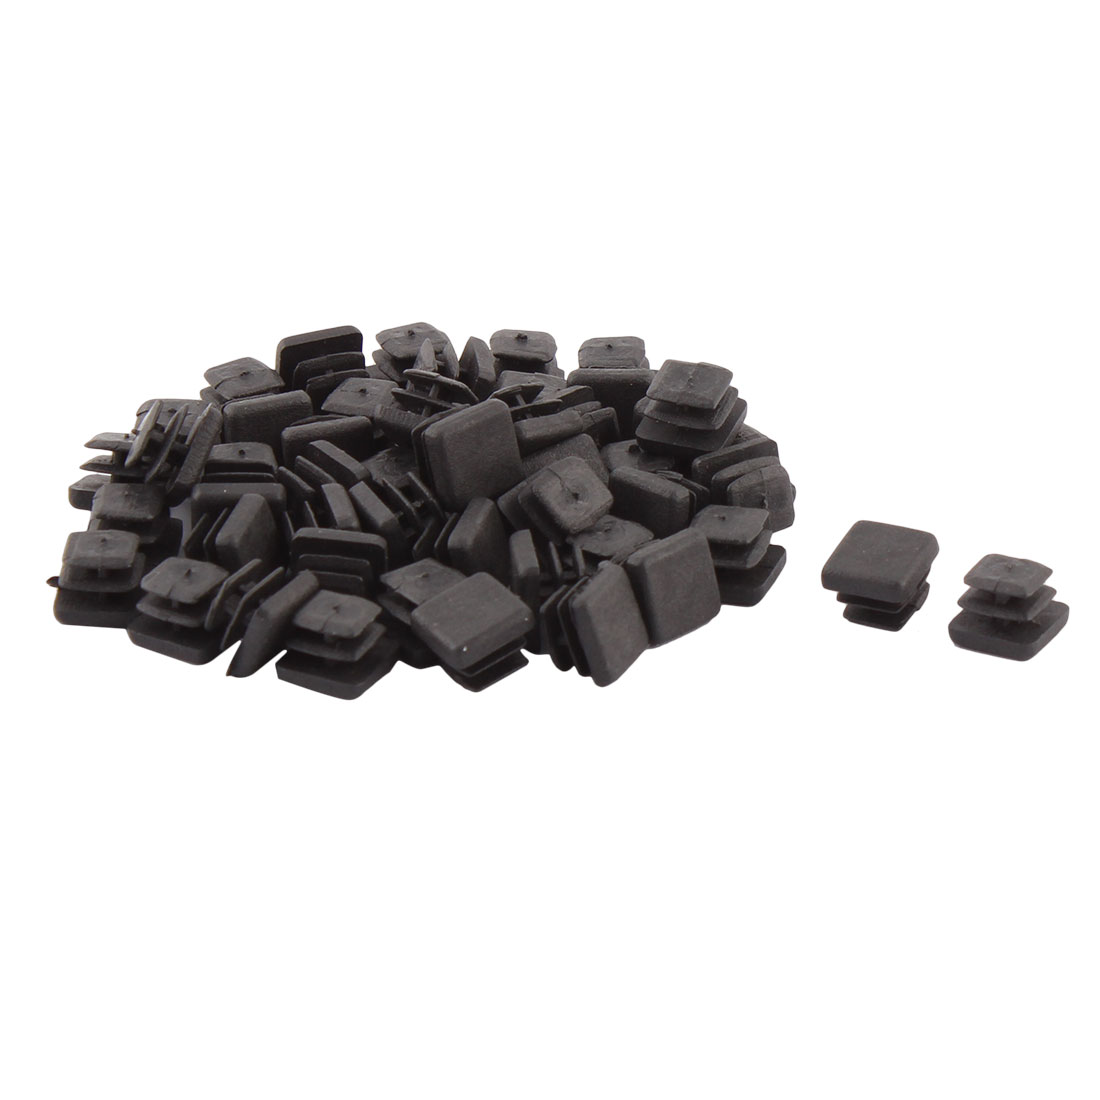 Household Plastic Square Shaped Table Seal Closure Tube Insert Black 10 x 10mm 50 PCS